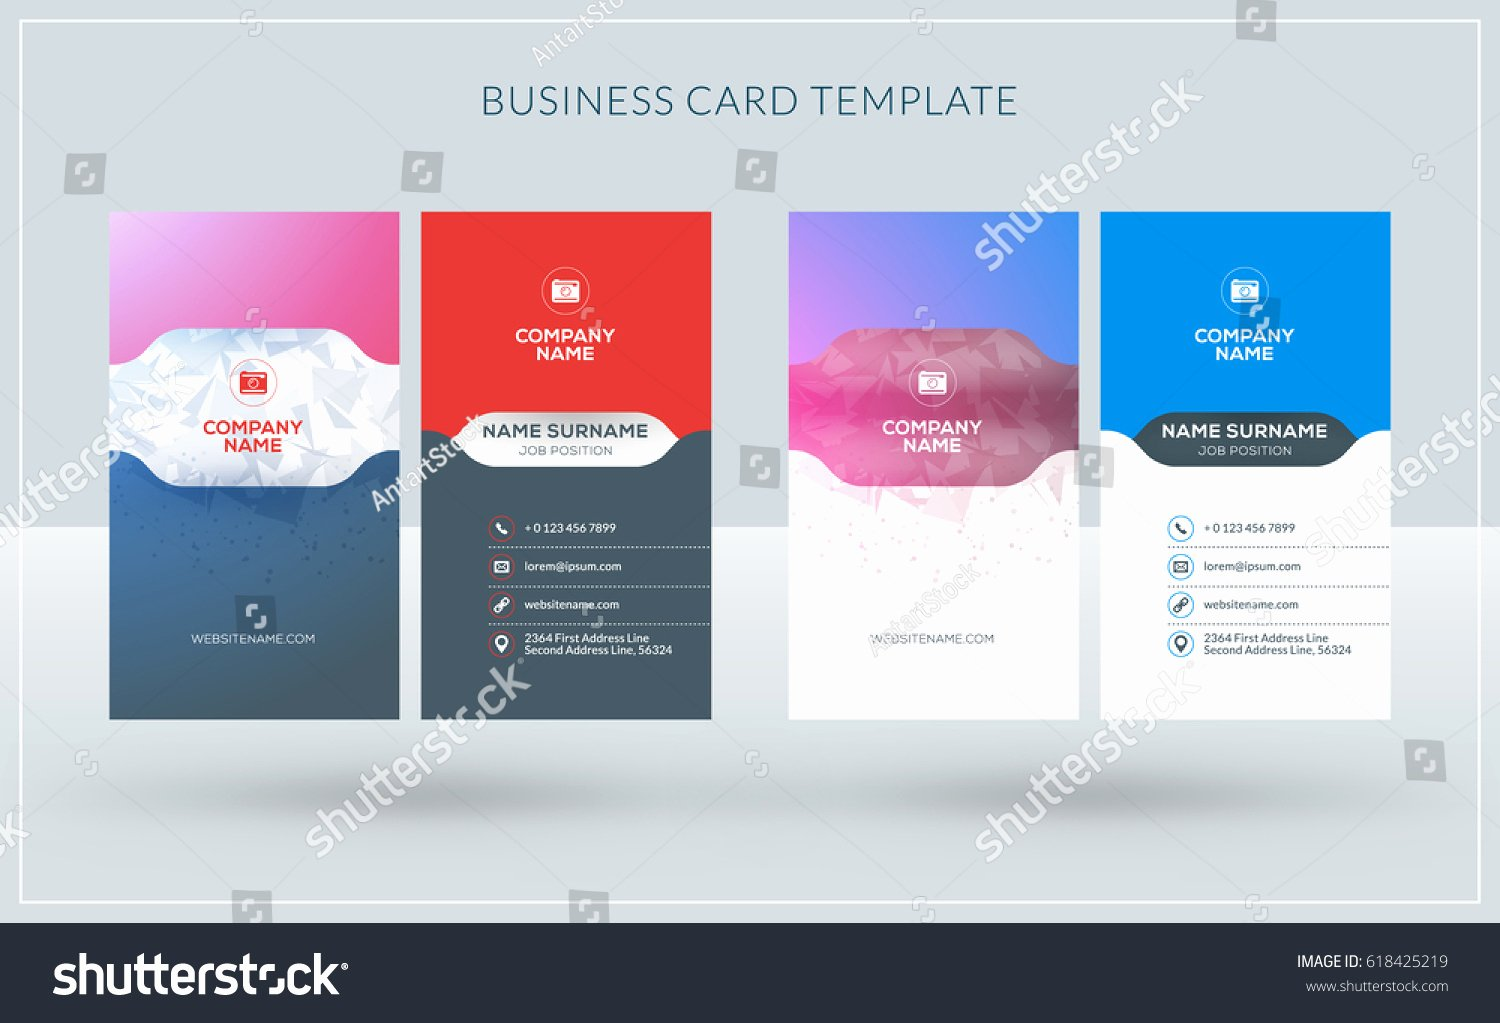 Vertical Doublesided Creative Business Card Templates